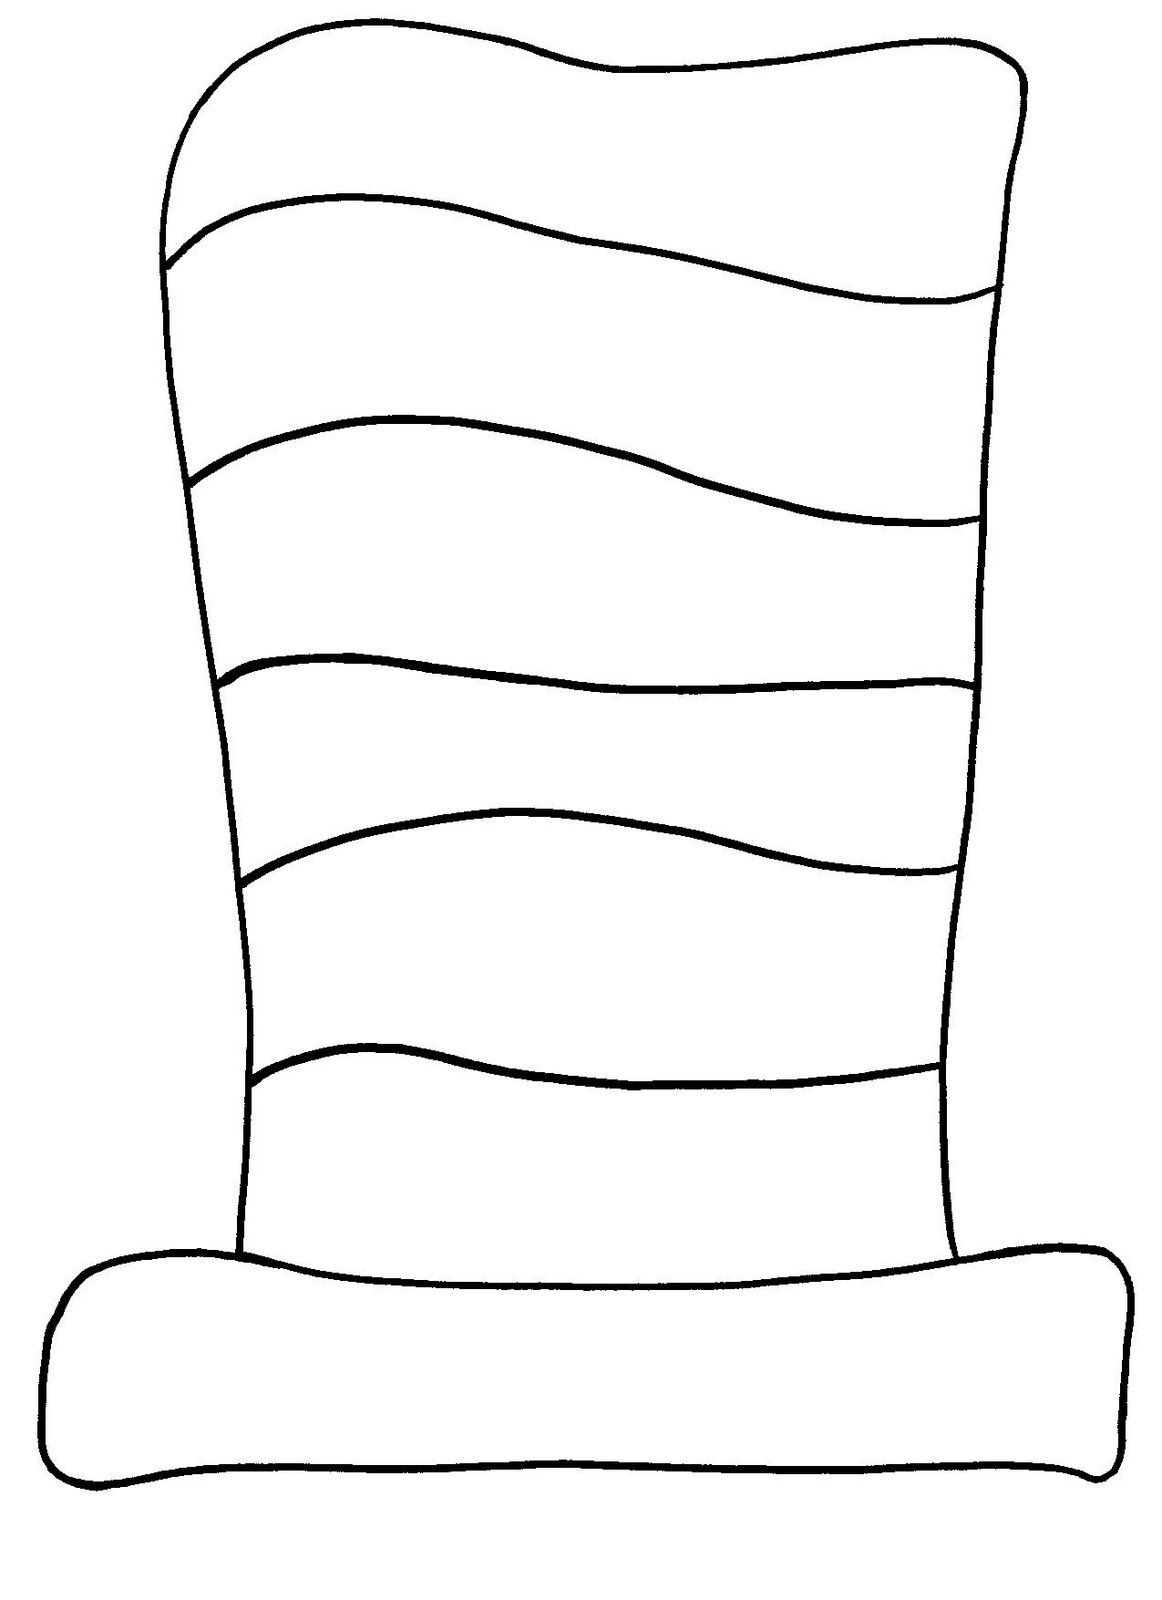 preschool cat in the hat coloring pages | Brilliant Beginnings Preschool: The Cat in the Hat Paint ...